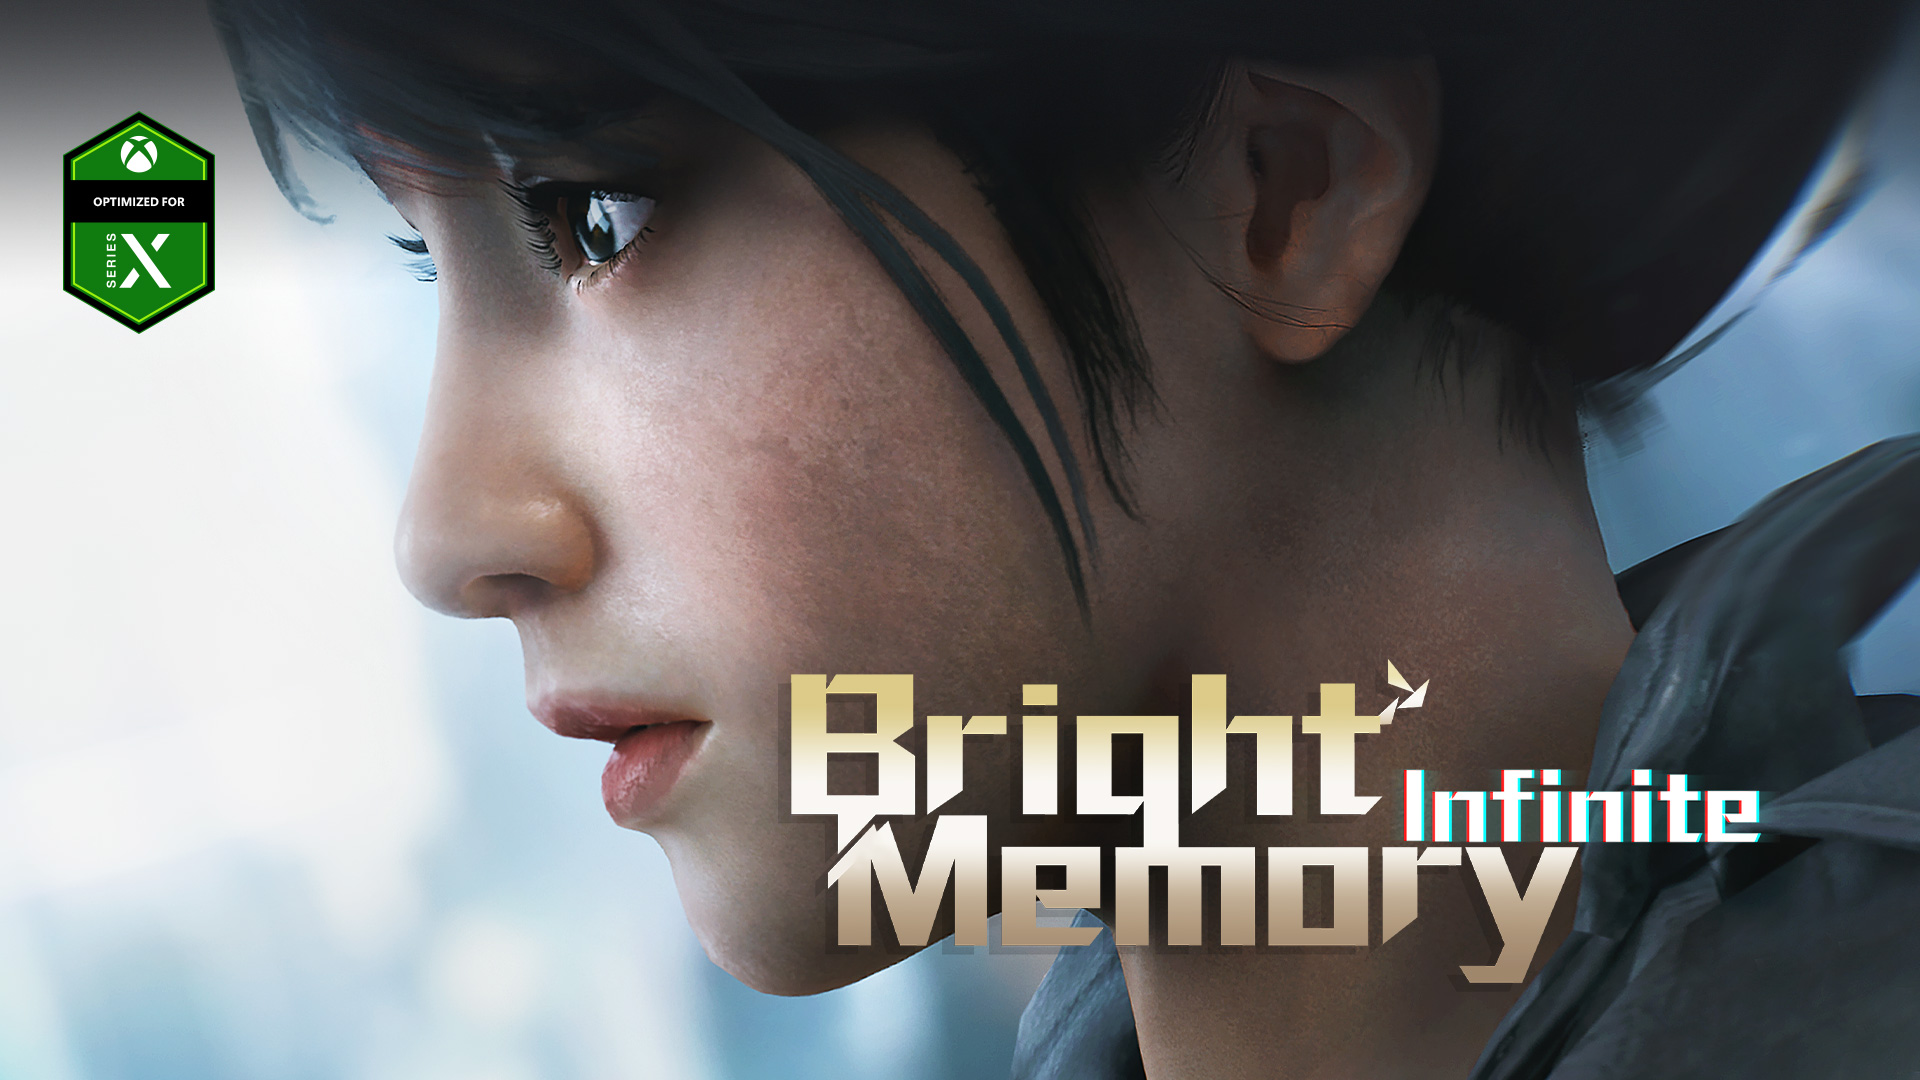 Bright Memory Infinite, Optimized for Series X, a young woman looks into the distance.